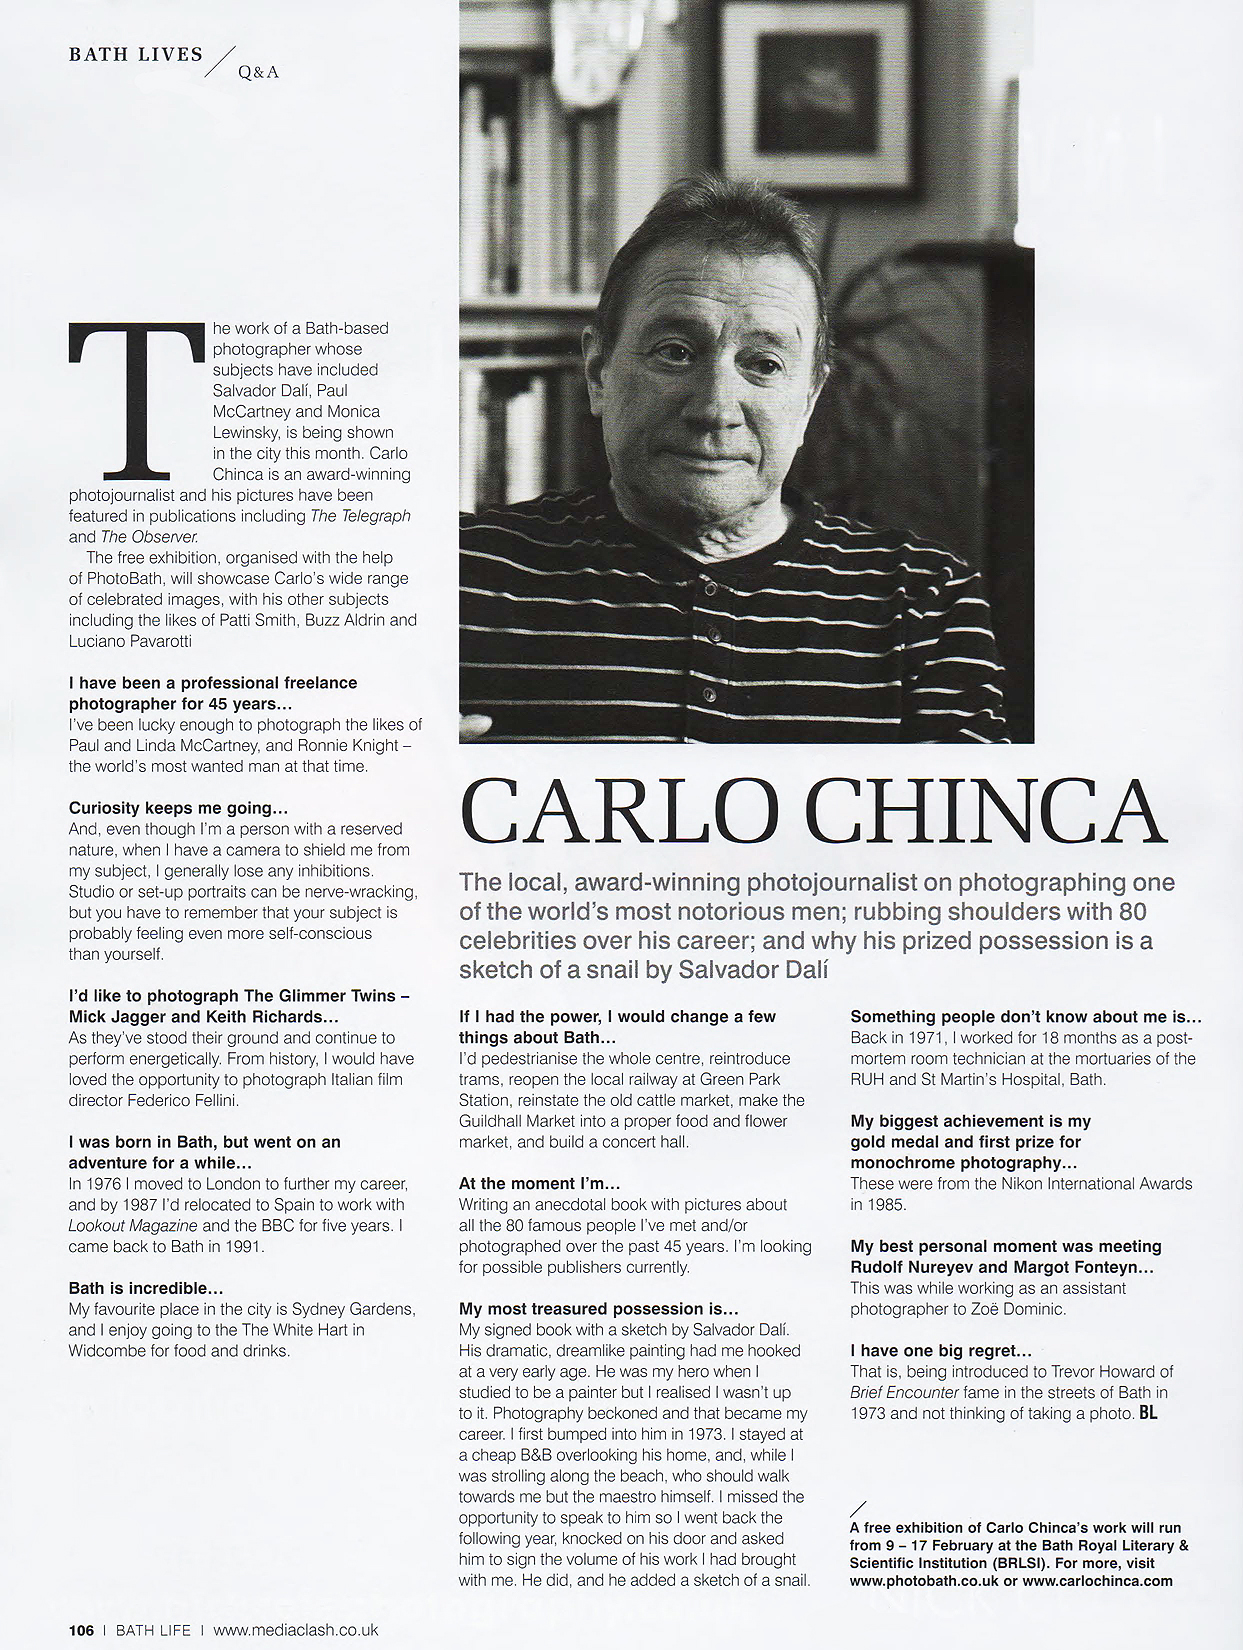 carlo chinca-bath life-feb2018